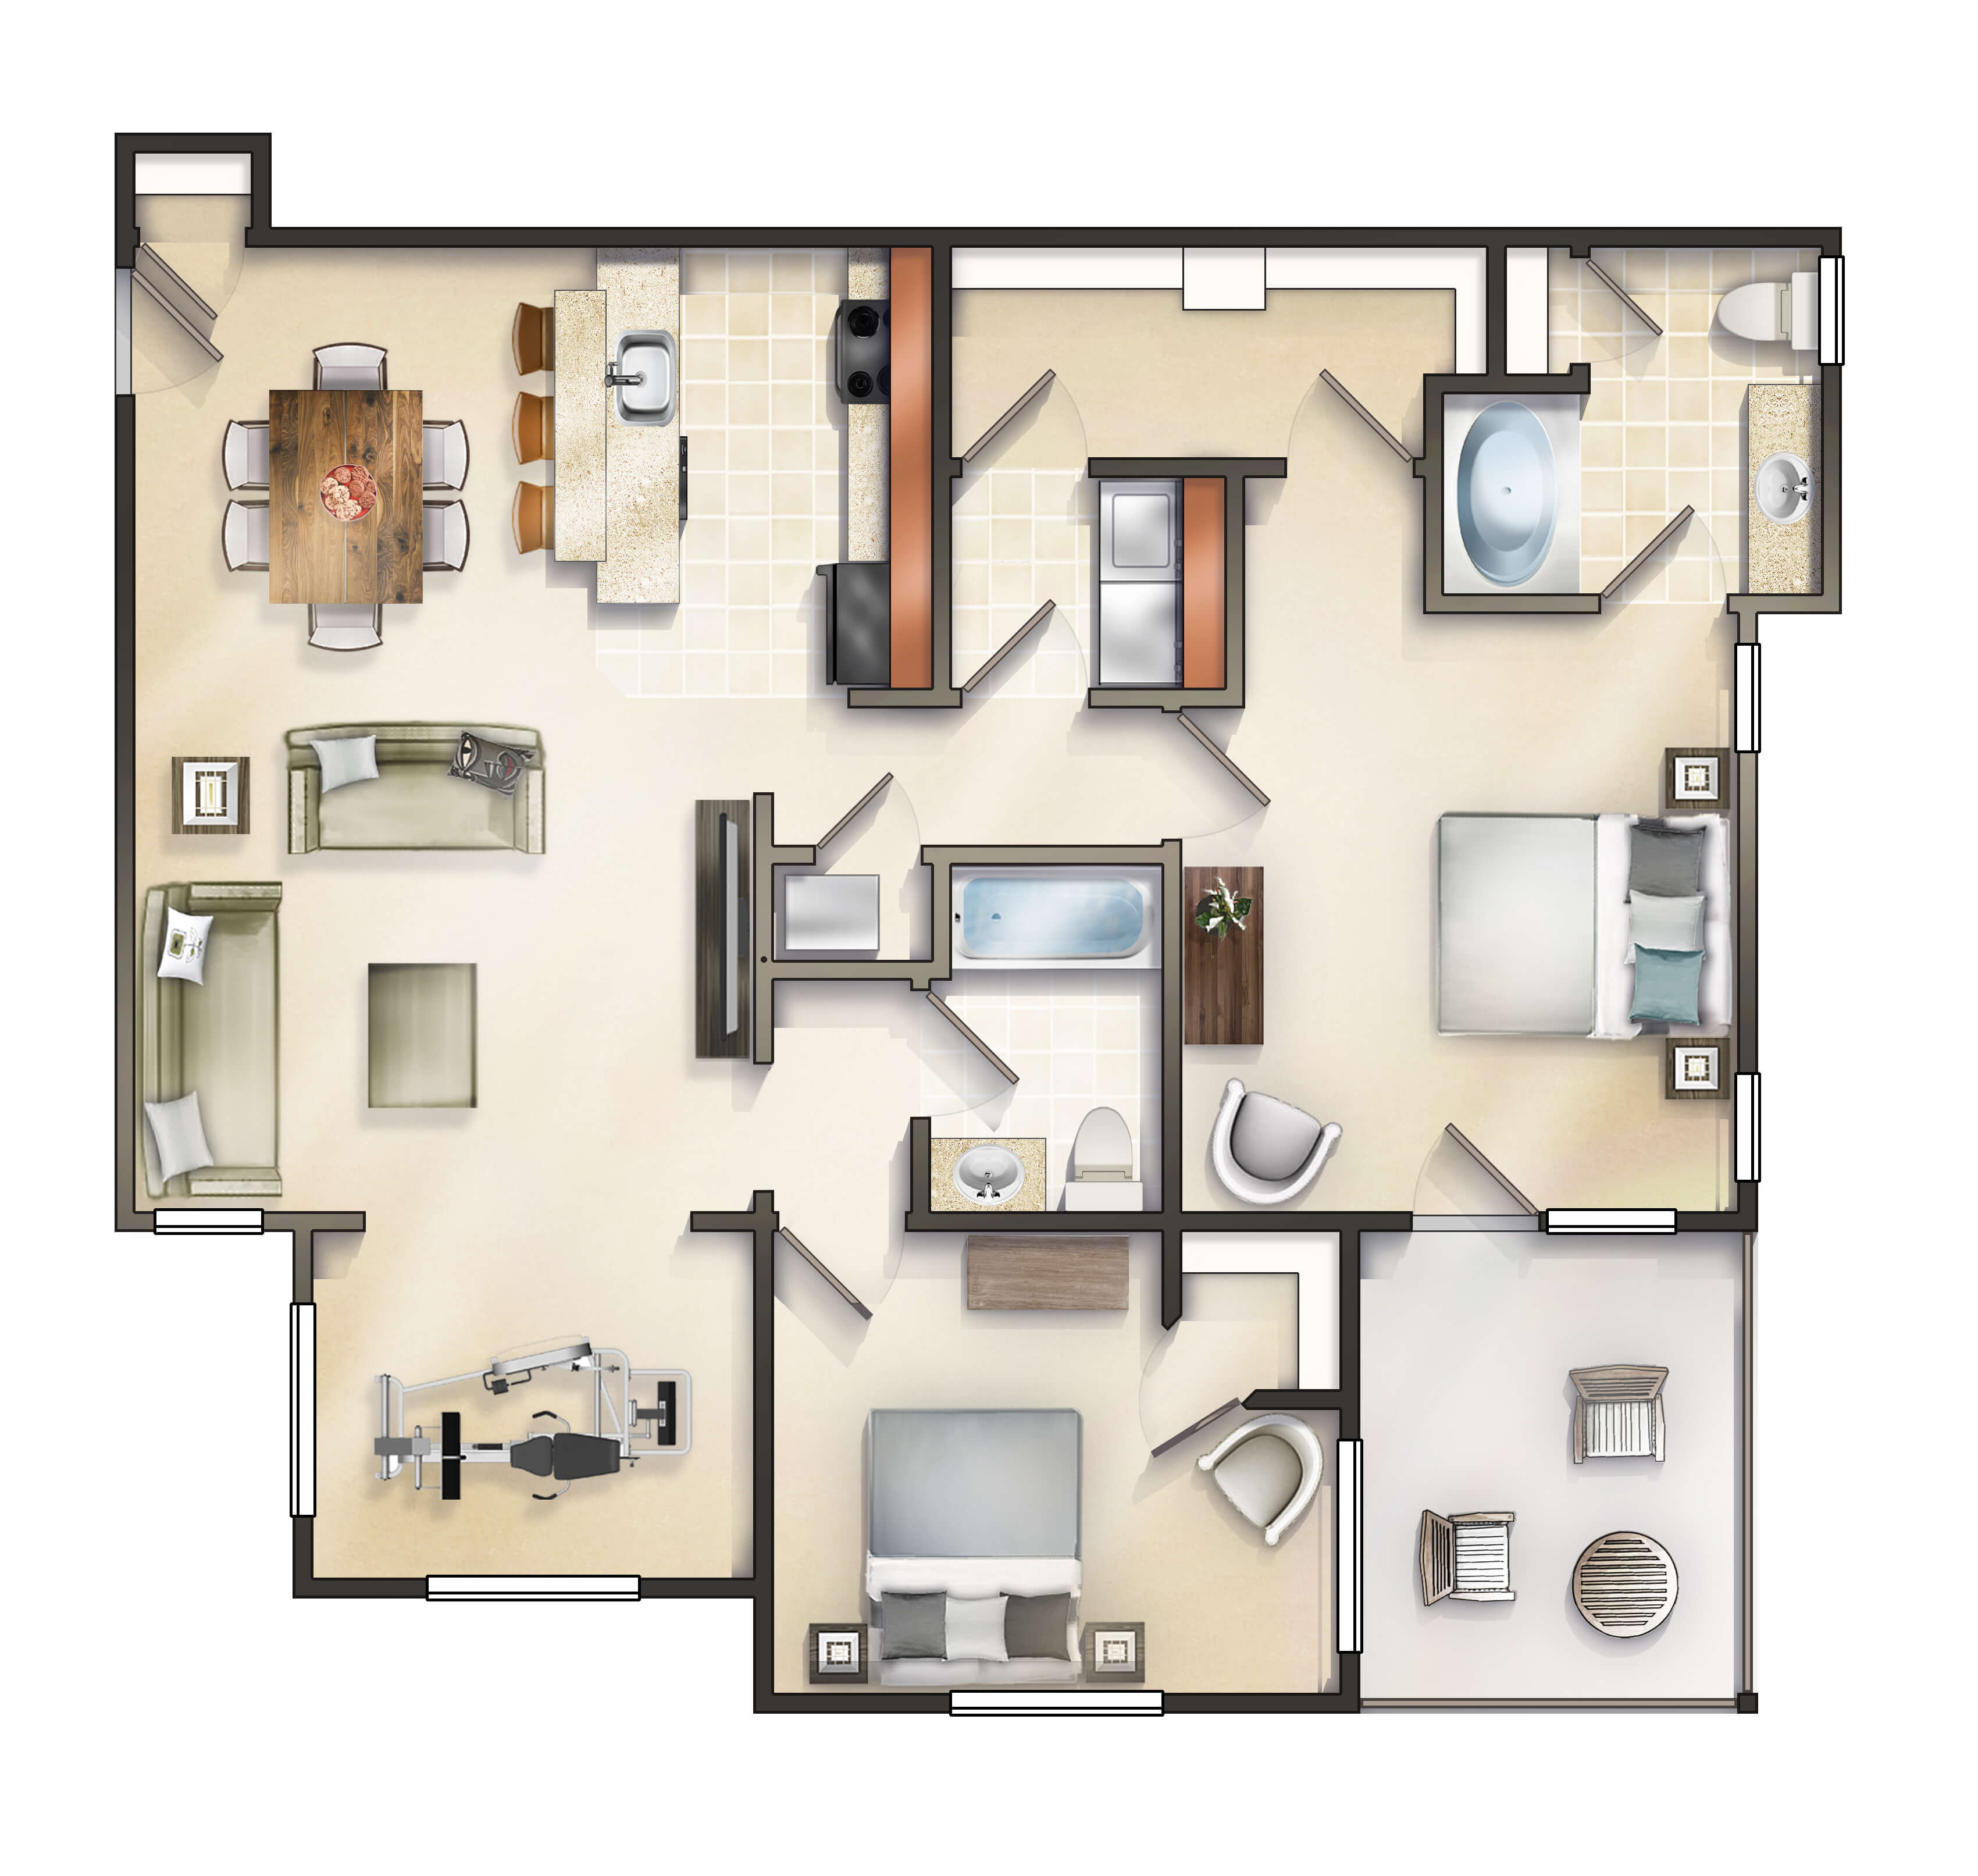 Town Centre Apartment Homes: Groves At Town Center Apartment Homes In Fletcher, NC